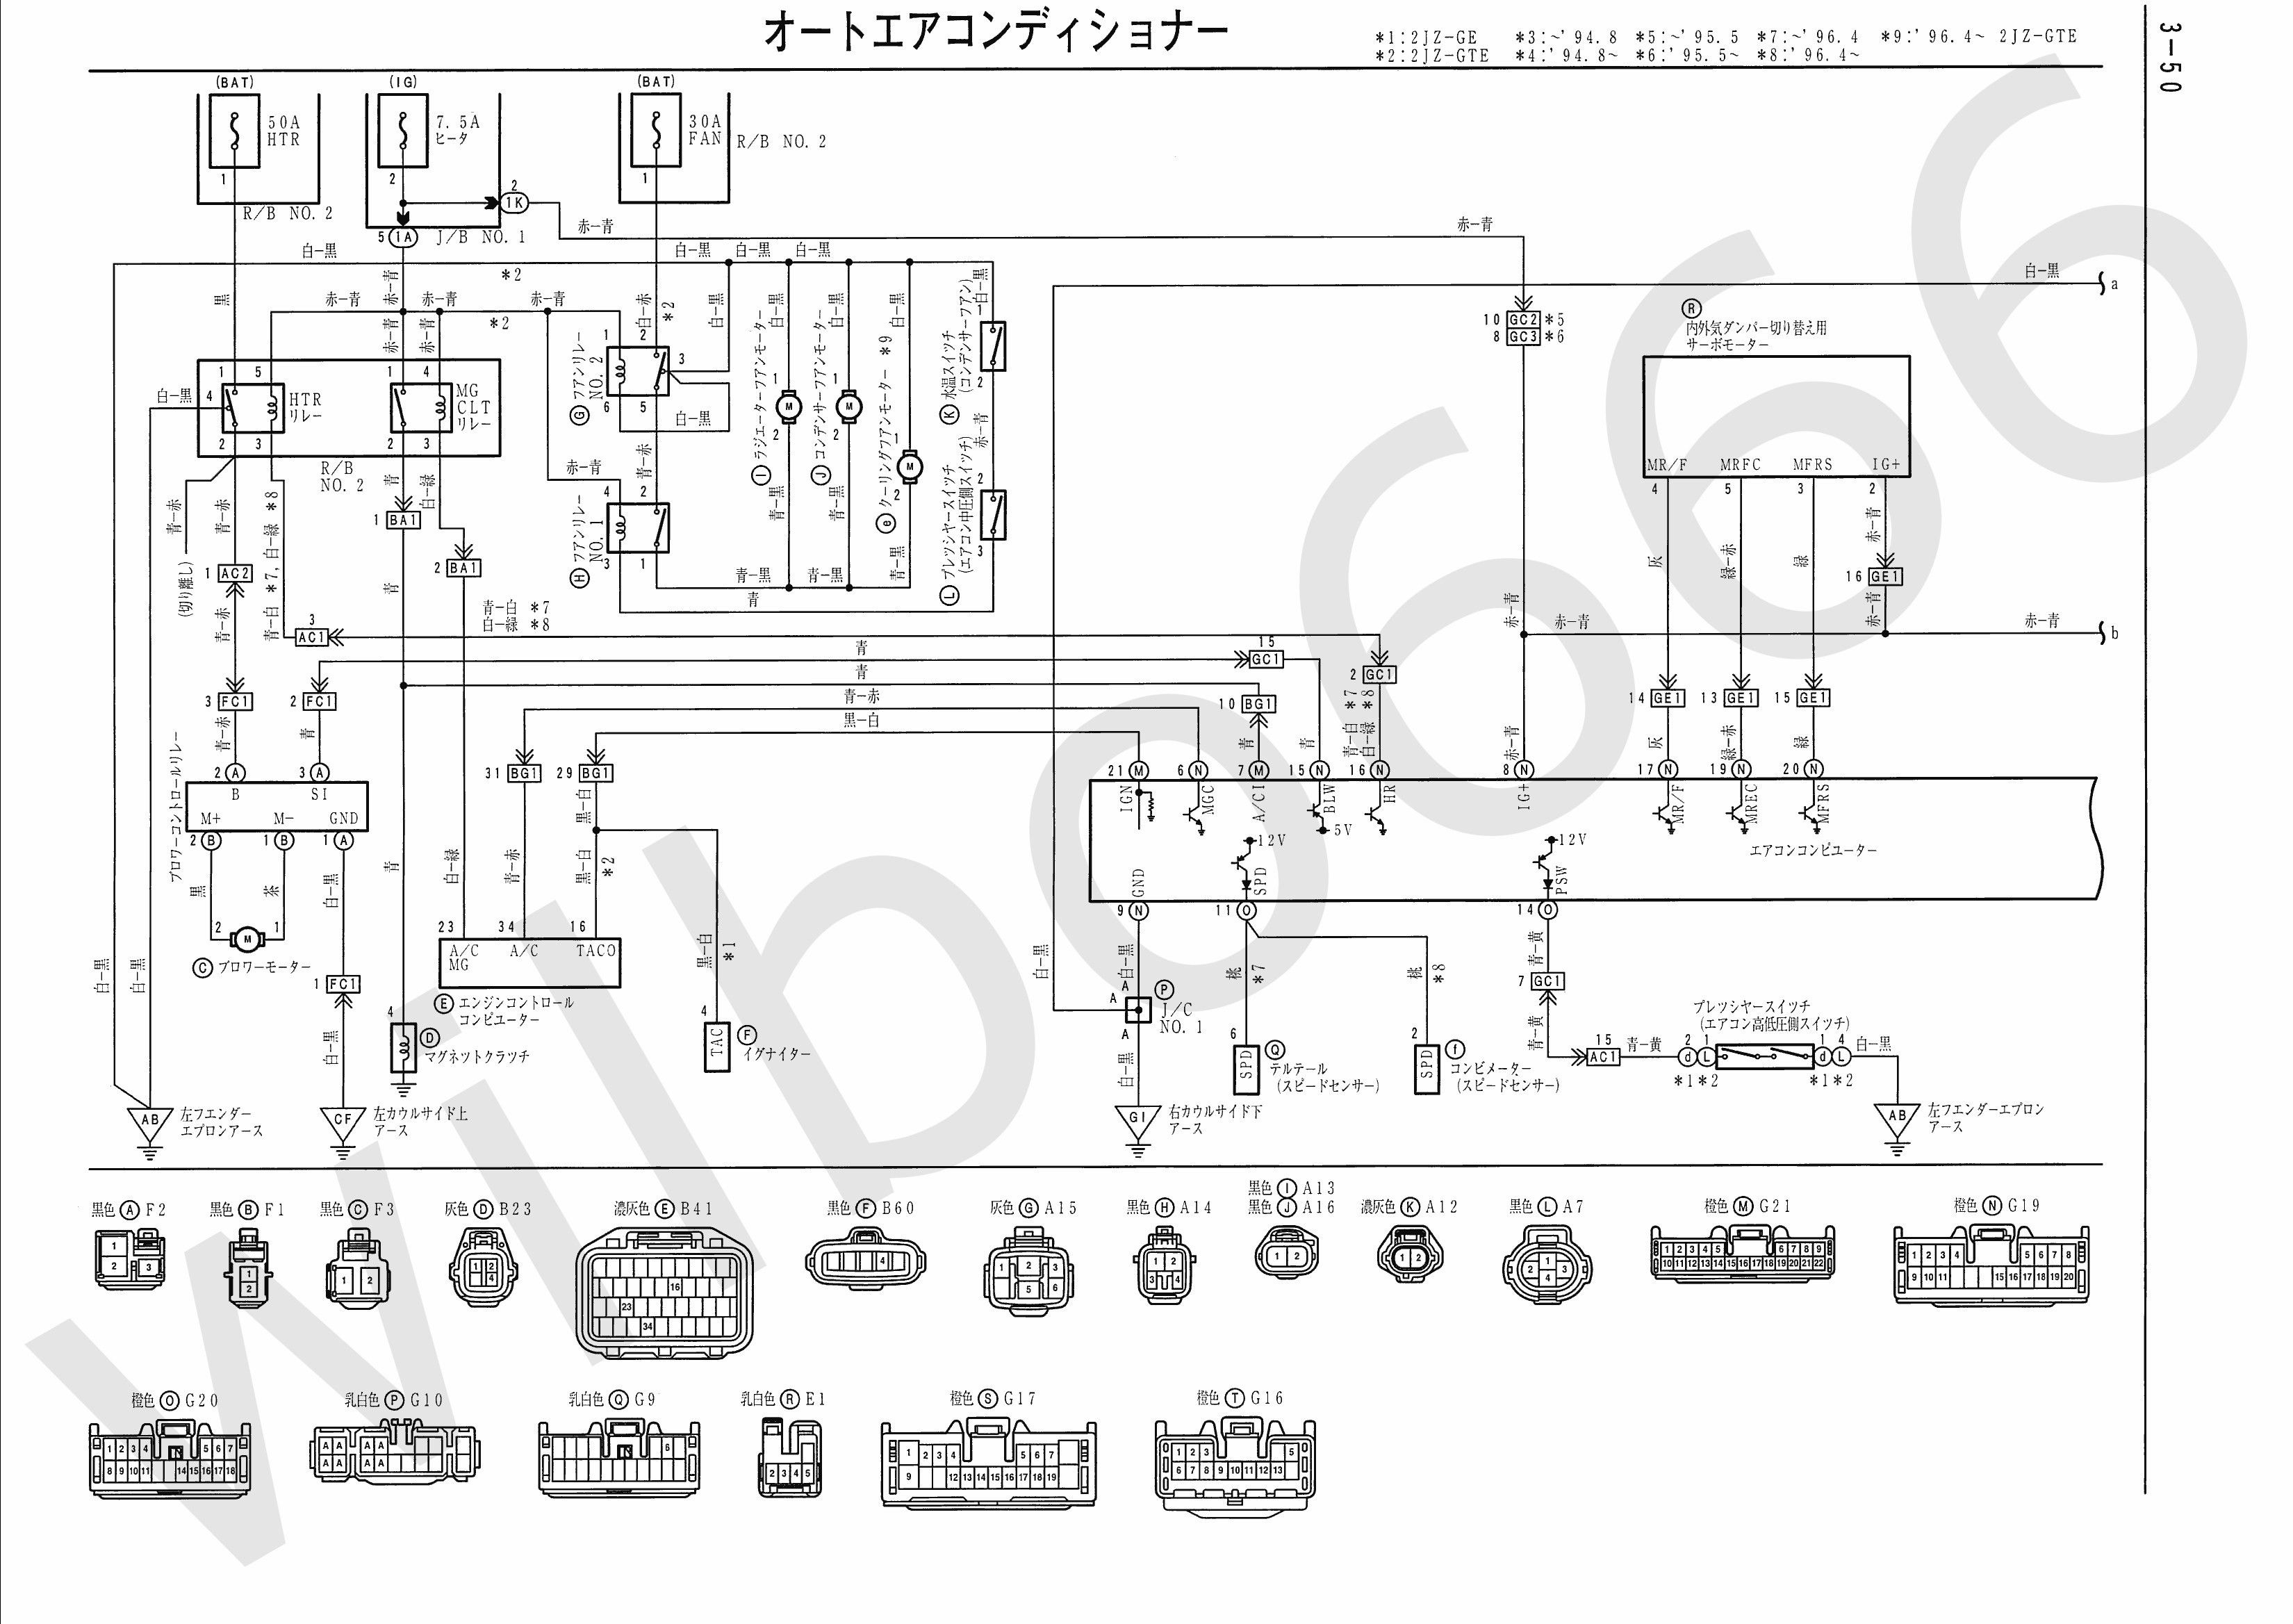 New Auto Gate Motor Wiring Diagram Pdf Drawing book pdf